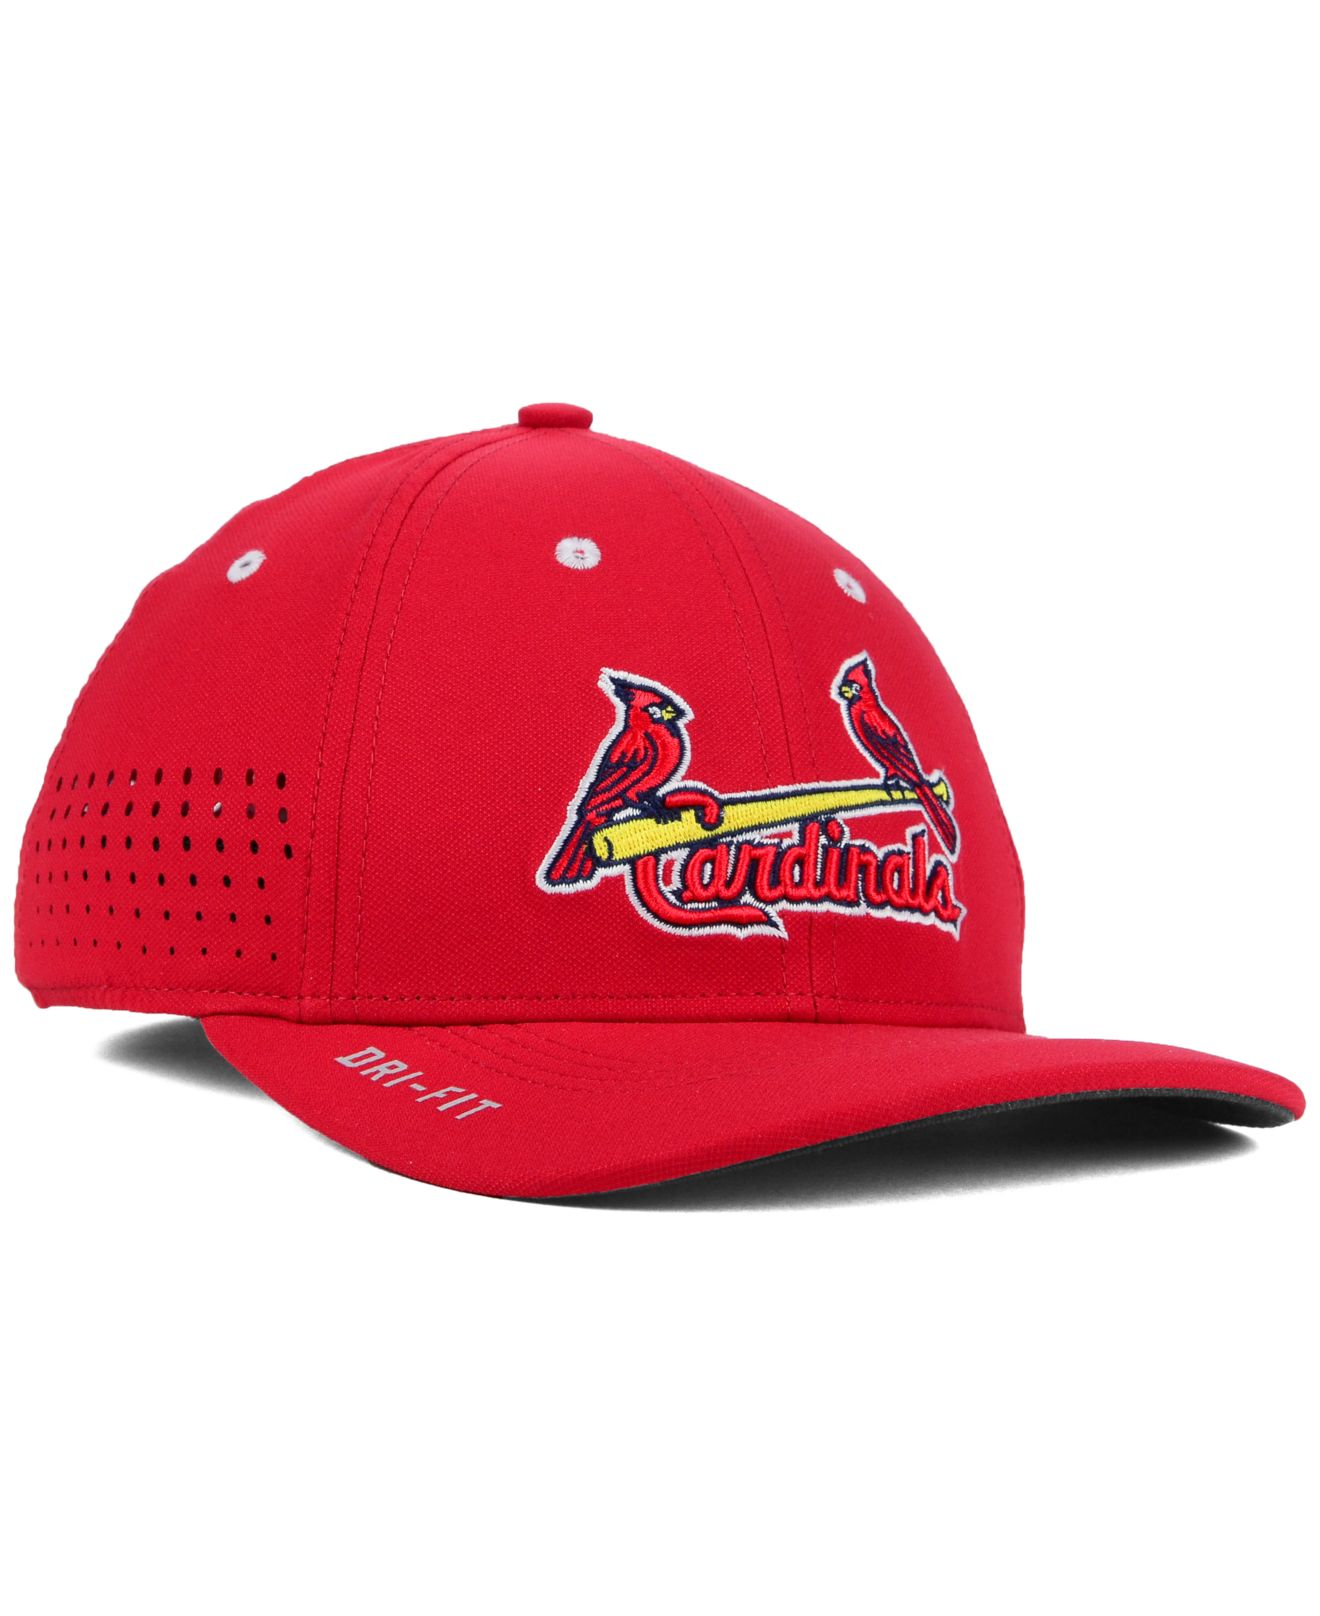 ... cheap lyst nike st. louis cardinals vapor swoosh flex cap in red for  men 0f42e a7b43c5f7b5a